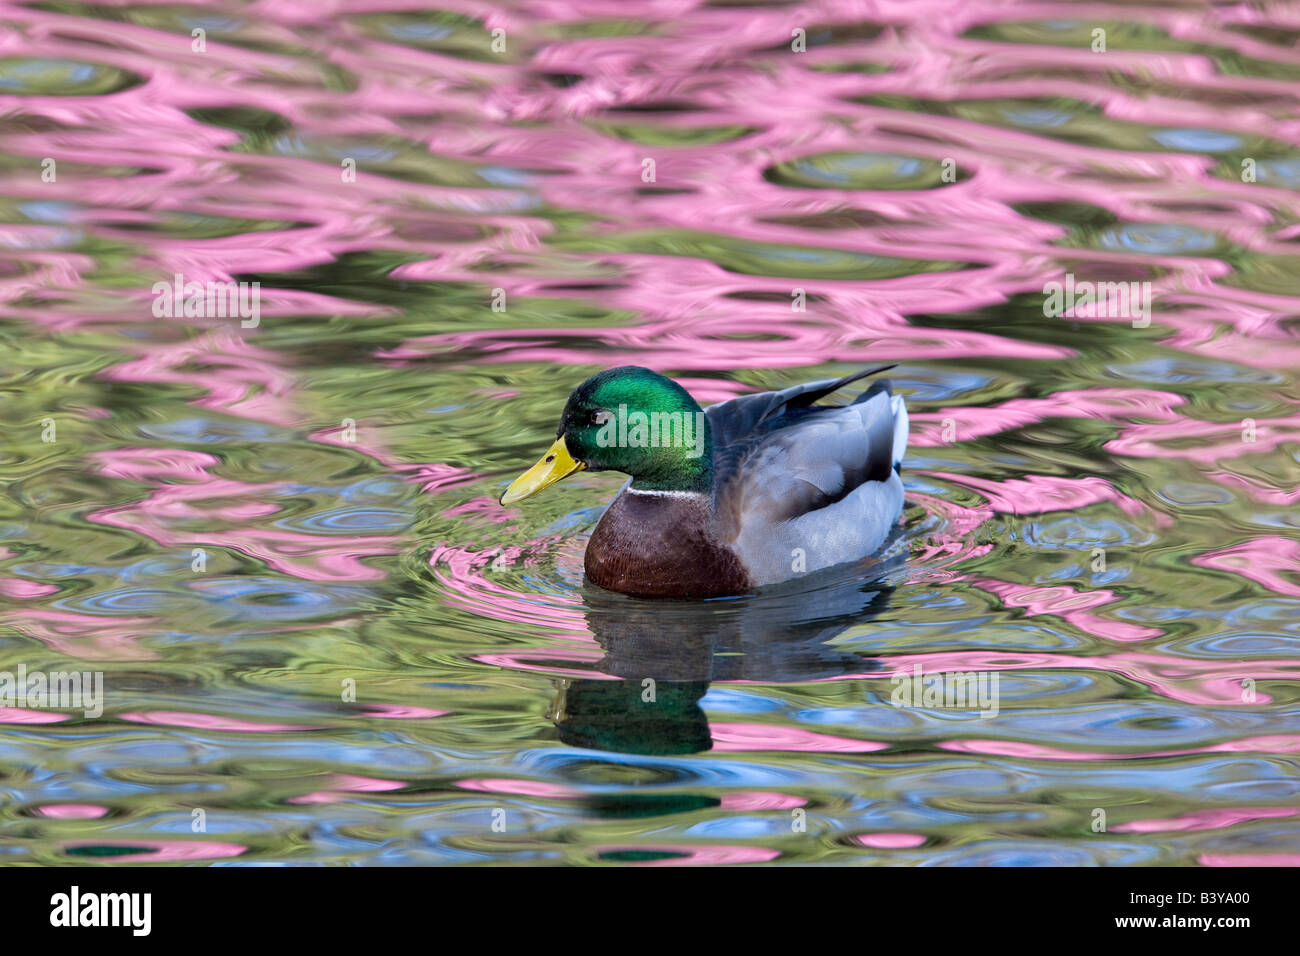 Wood duck at Cystal Springs Rhododendron Garden with reflecting Rhododendron in bloom Portland Oregon - Stock Image